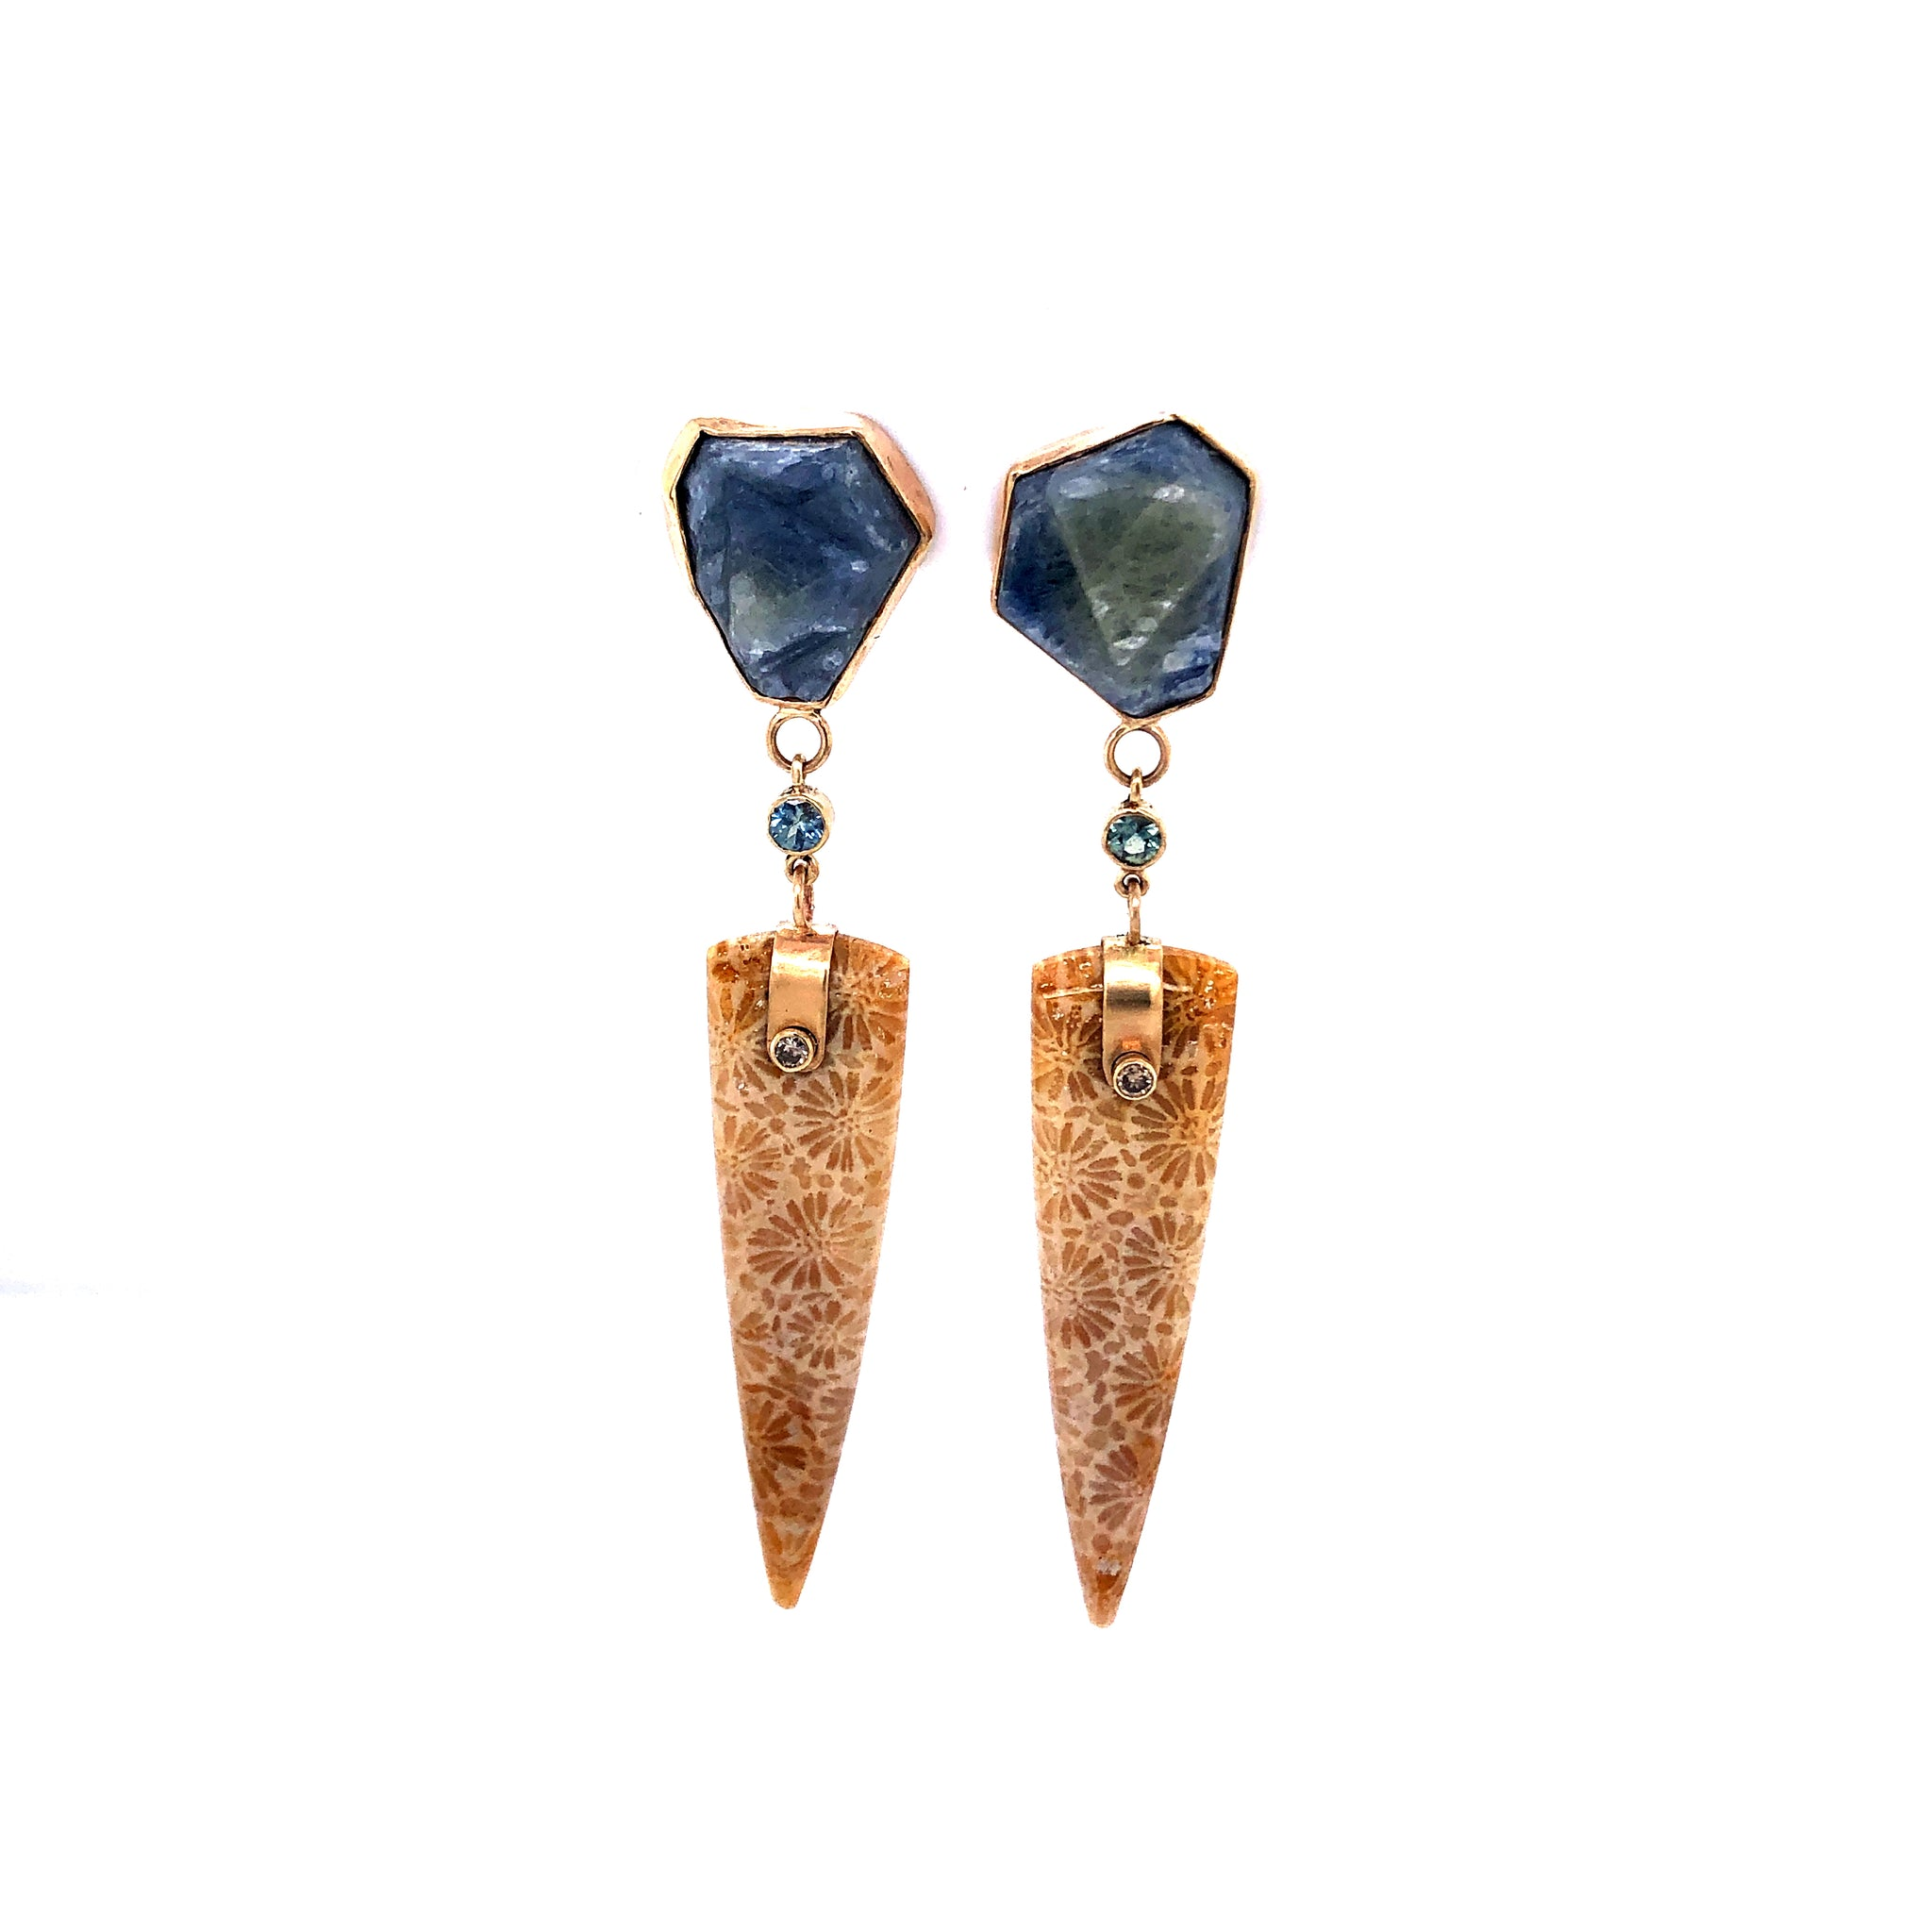 Sapphire and Fossilized Coral Earrings, Handmade in 14k Gold